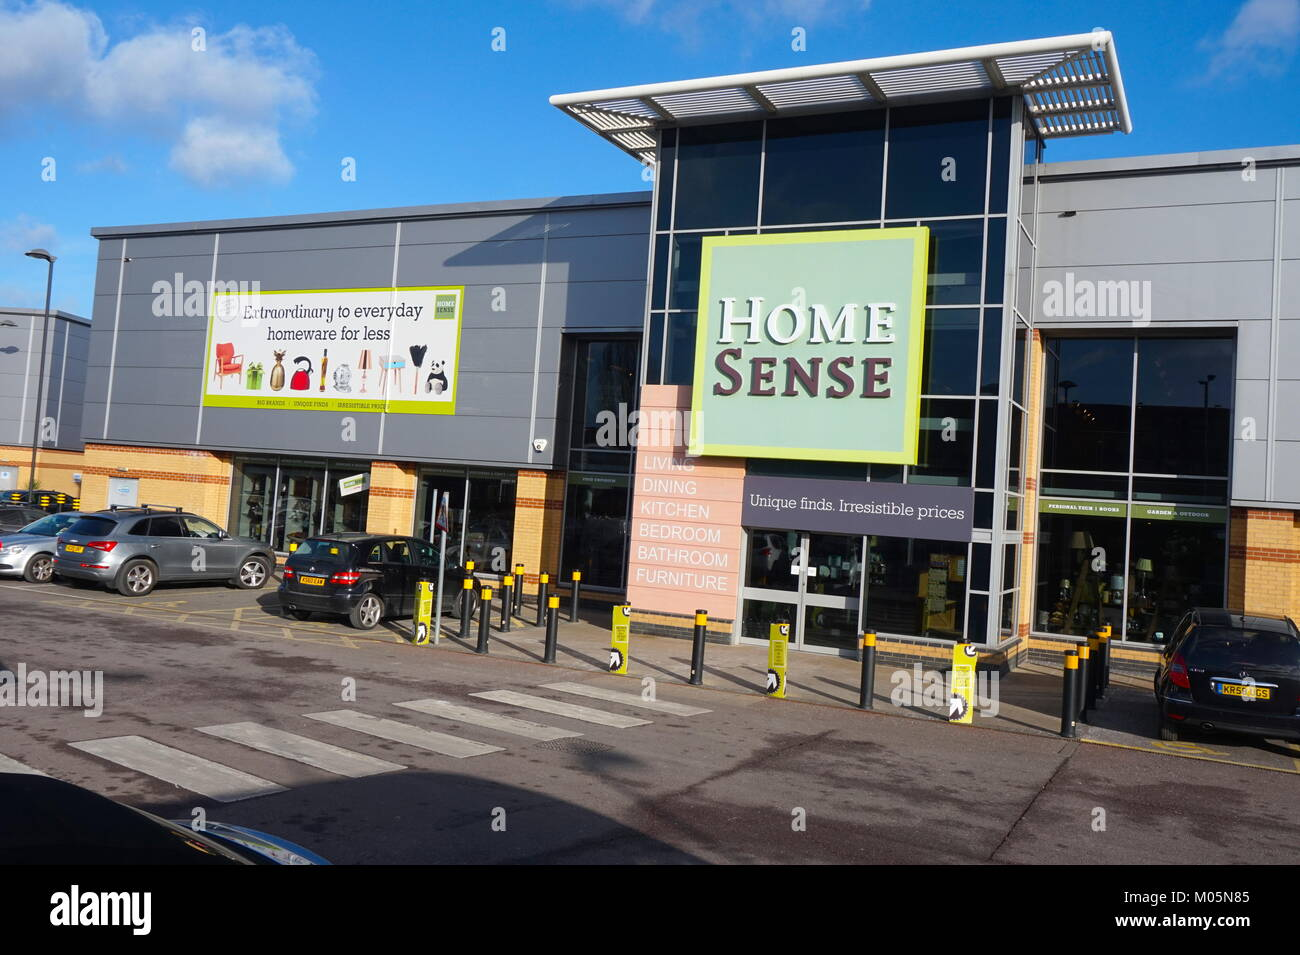 Home Sense, Staples Corner Retail Park - Stock Image